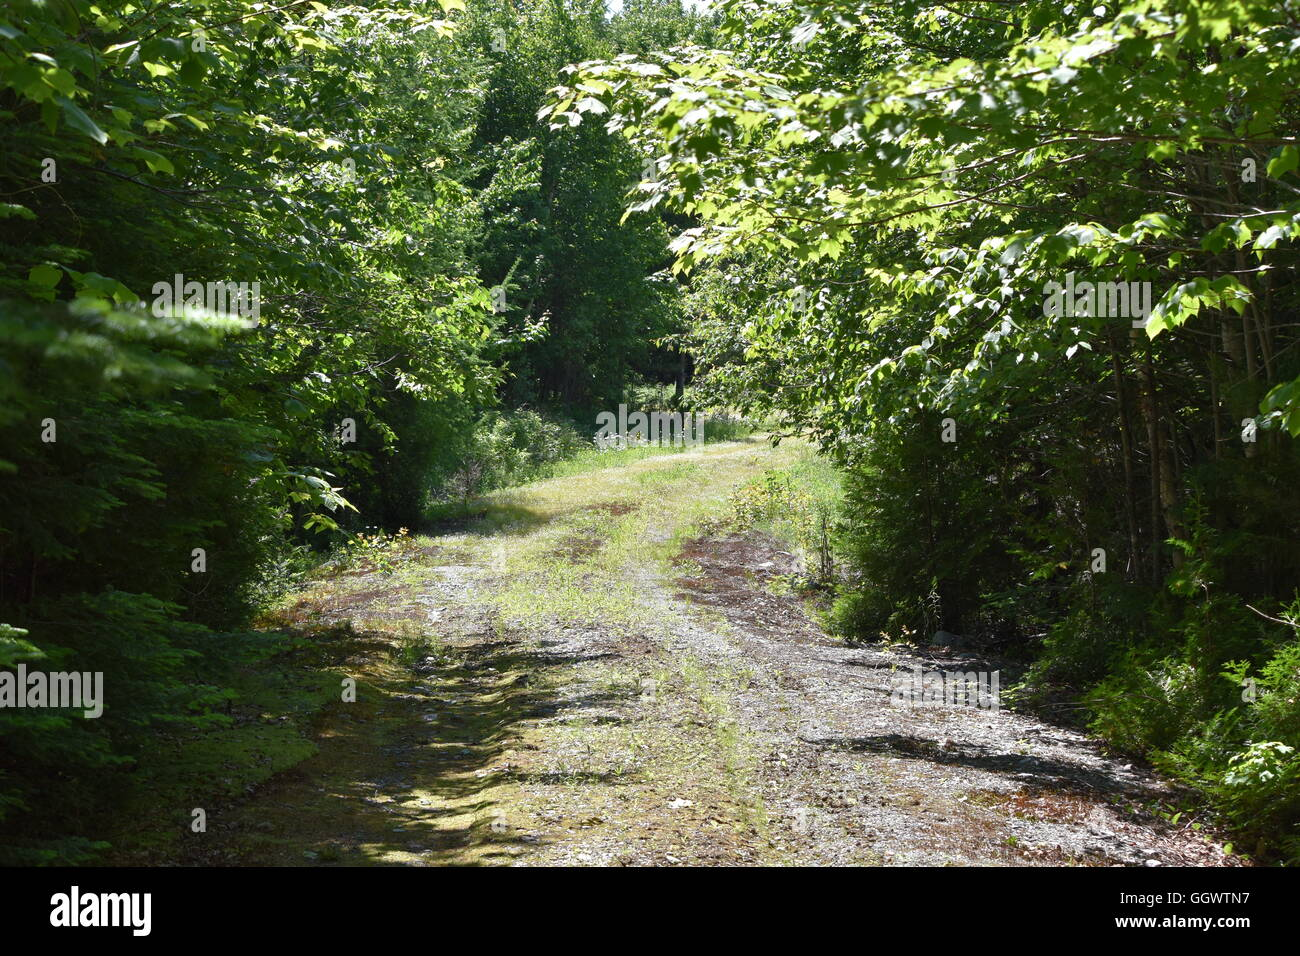 Winding unpaved road grassing over in northern Maine - Stock Image